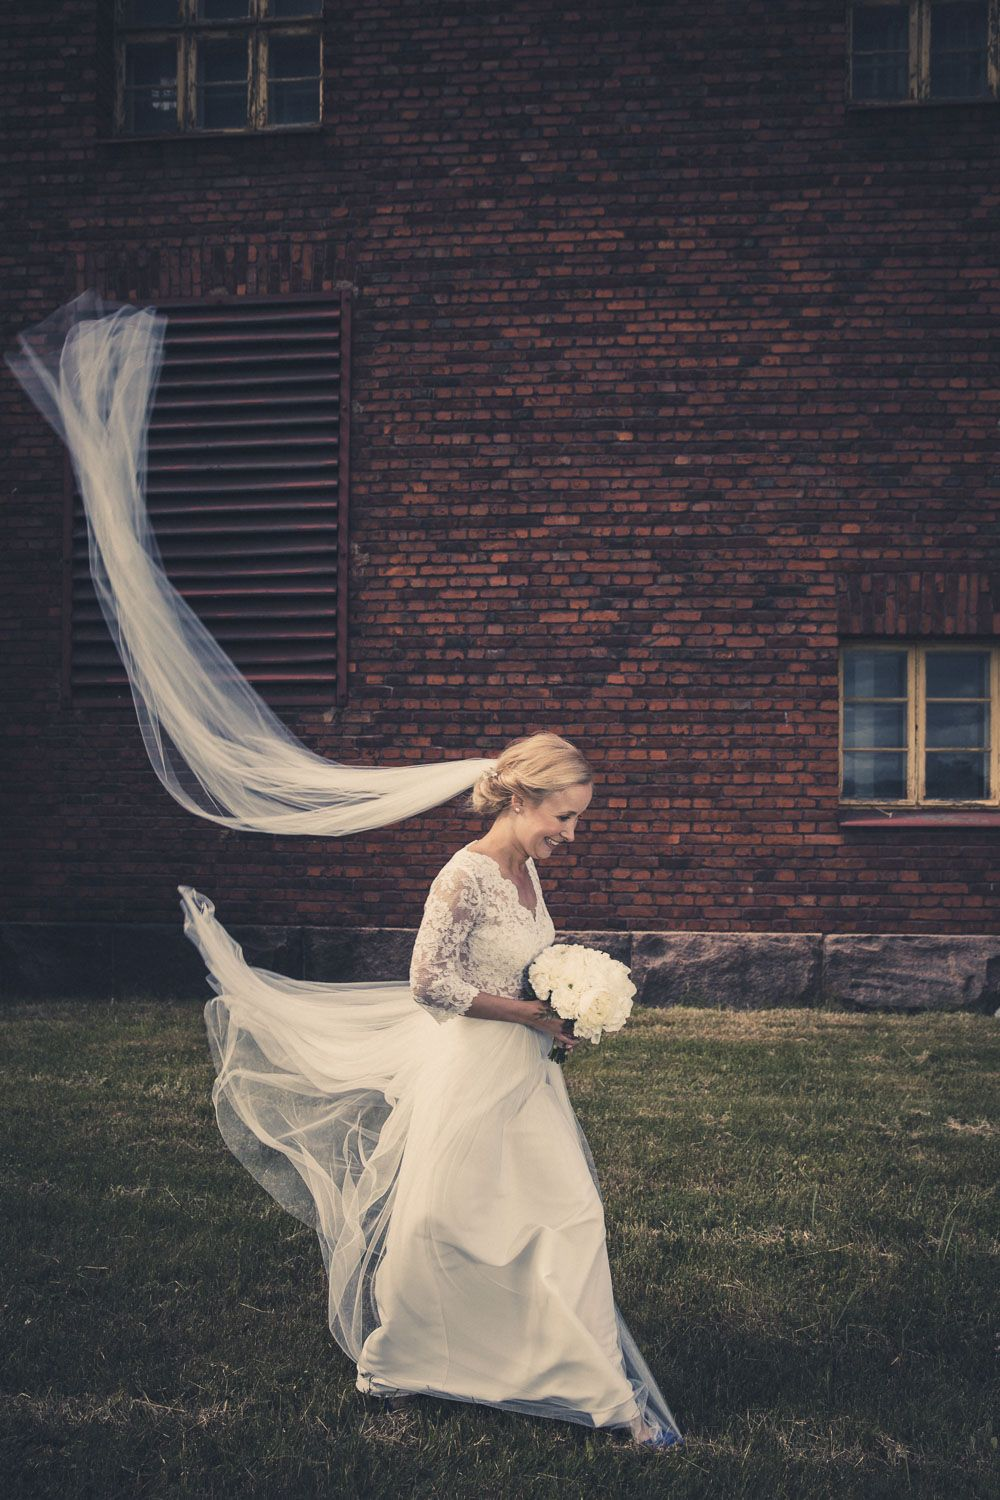 Real wedding in Finland. Dress made by Pukuni (www.pukuni.fi). Wedding dress with lace, tulle and open back. Photography / Risto Kuitunen